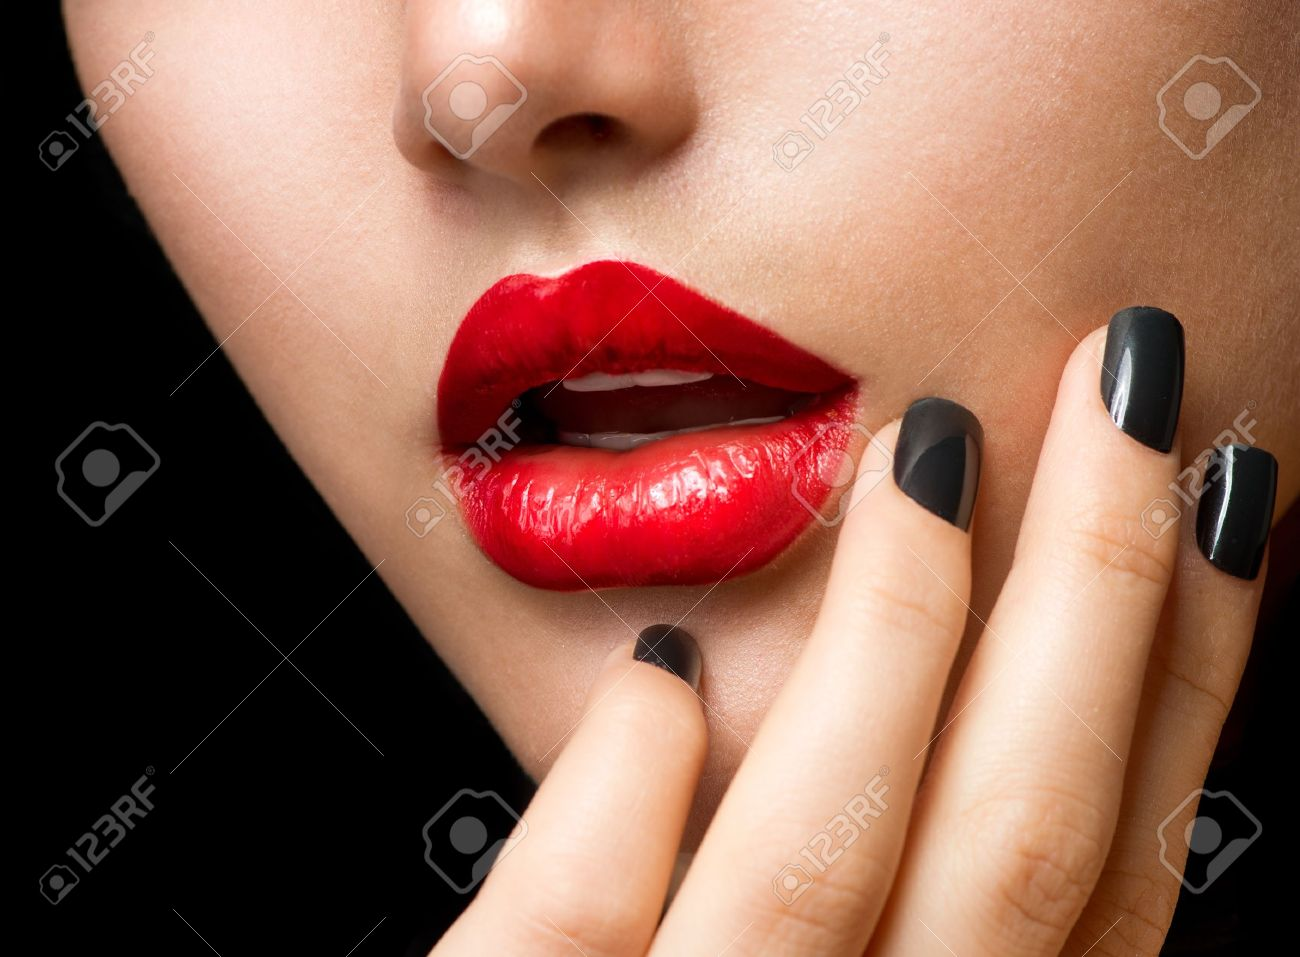 Makeup and Manicure  Black Nails and Red Lips Stock Photo - 17535776